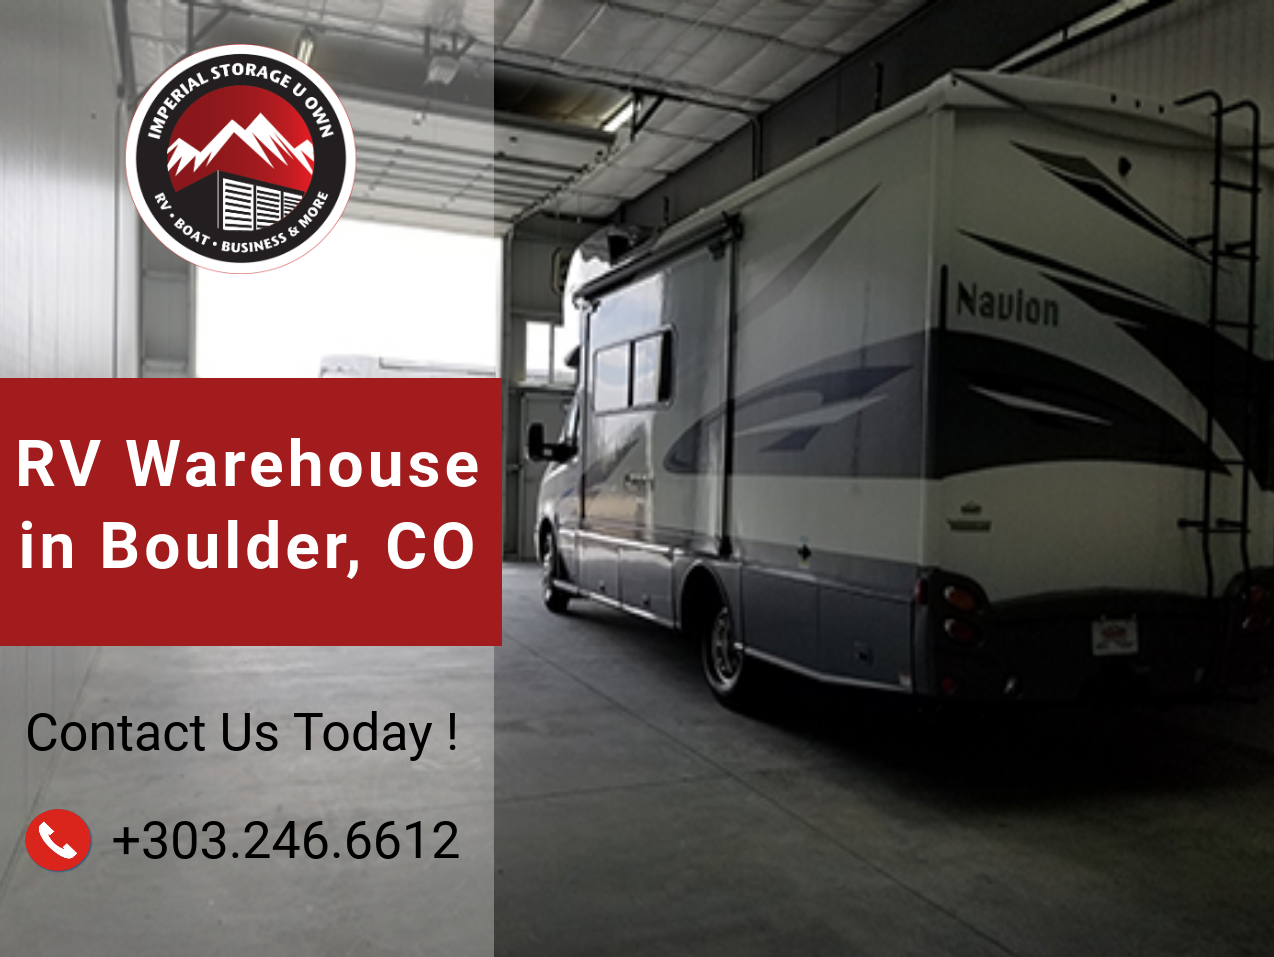 Warehouse industry trailers for trucks and cars